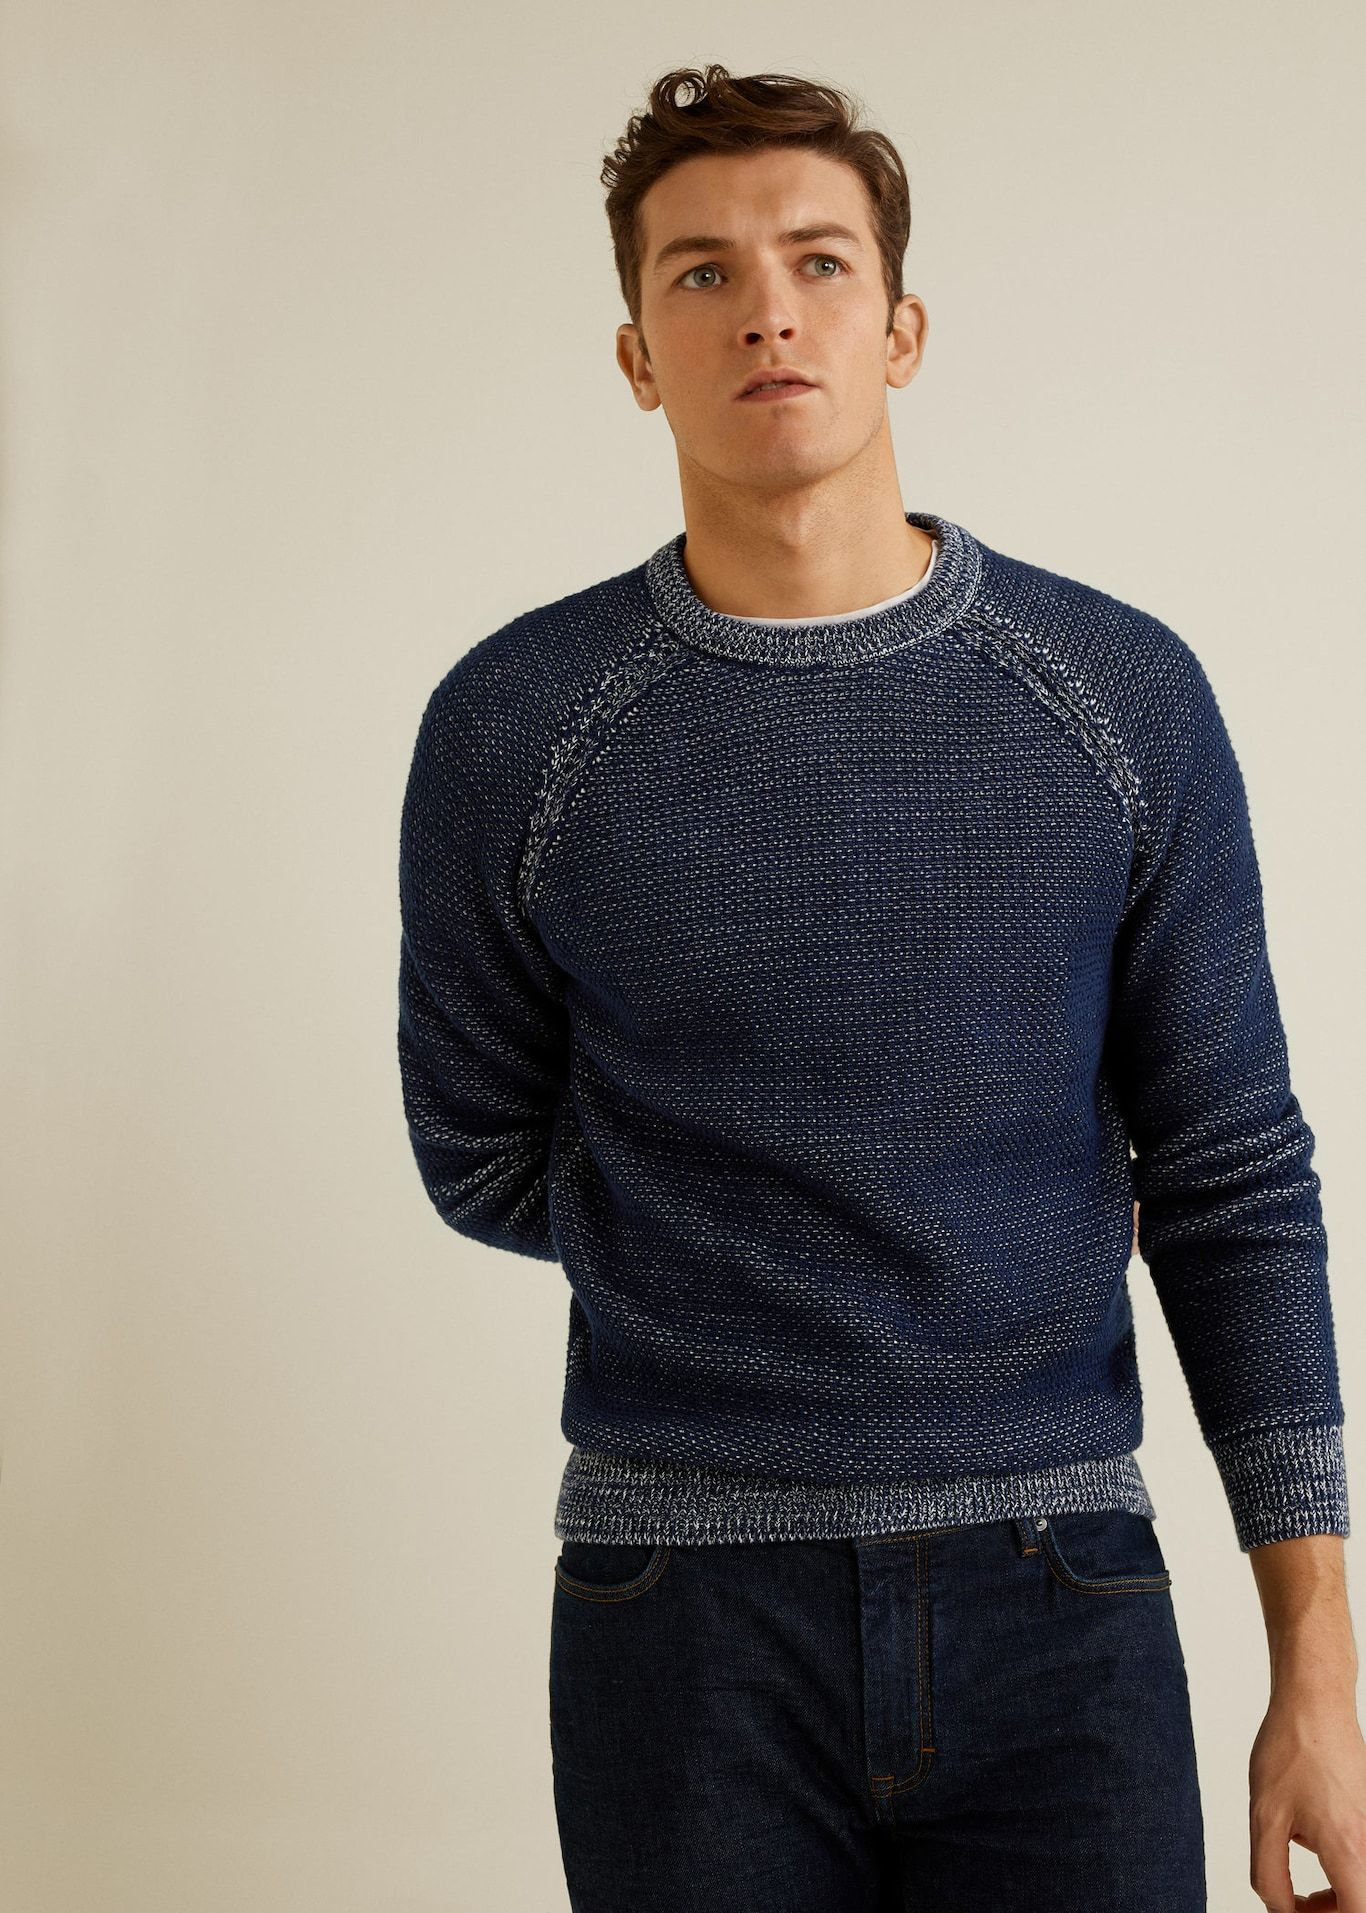 JSY Men Fashion Round Neck Knitted Contrast Colors Pullover Sweaters